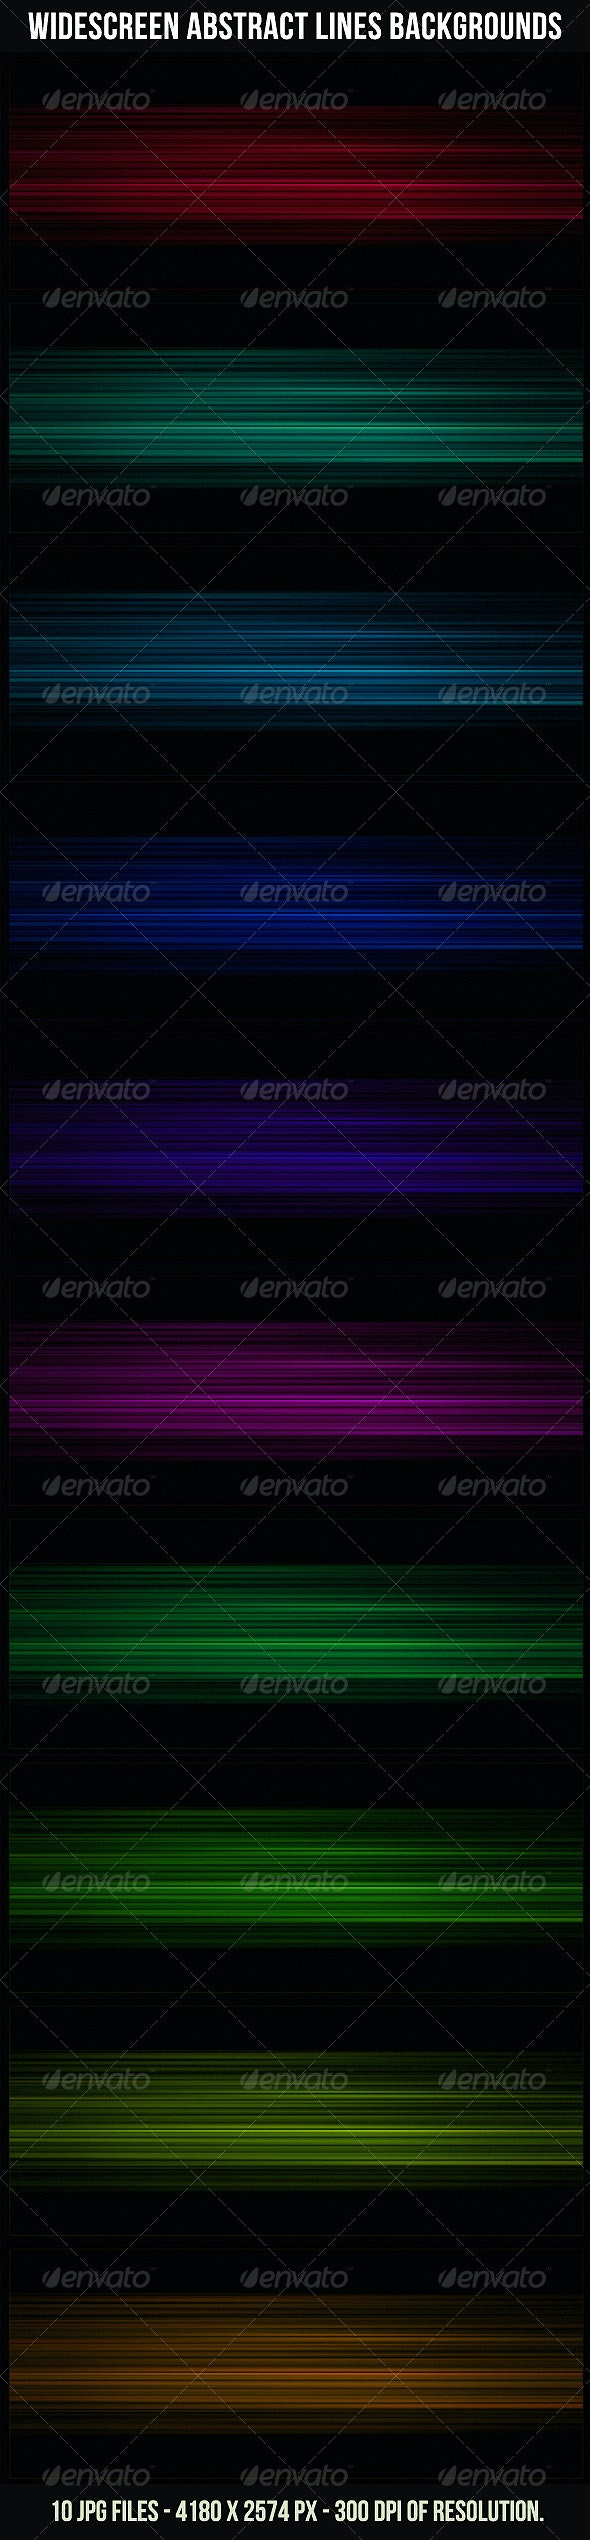 Widescreen Abstract Lines Backgrounds - Tech / Futuristic Backgrounds